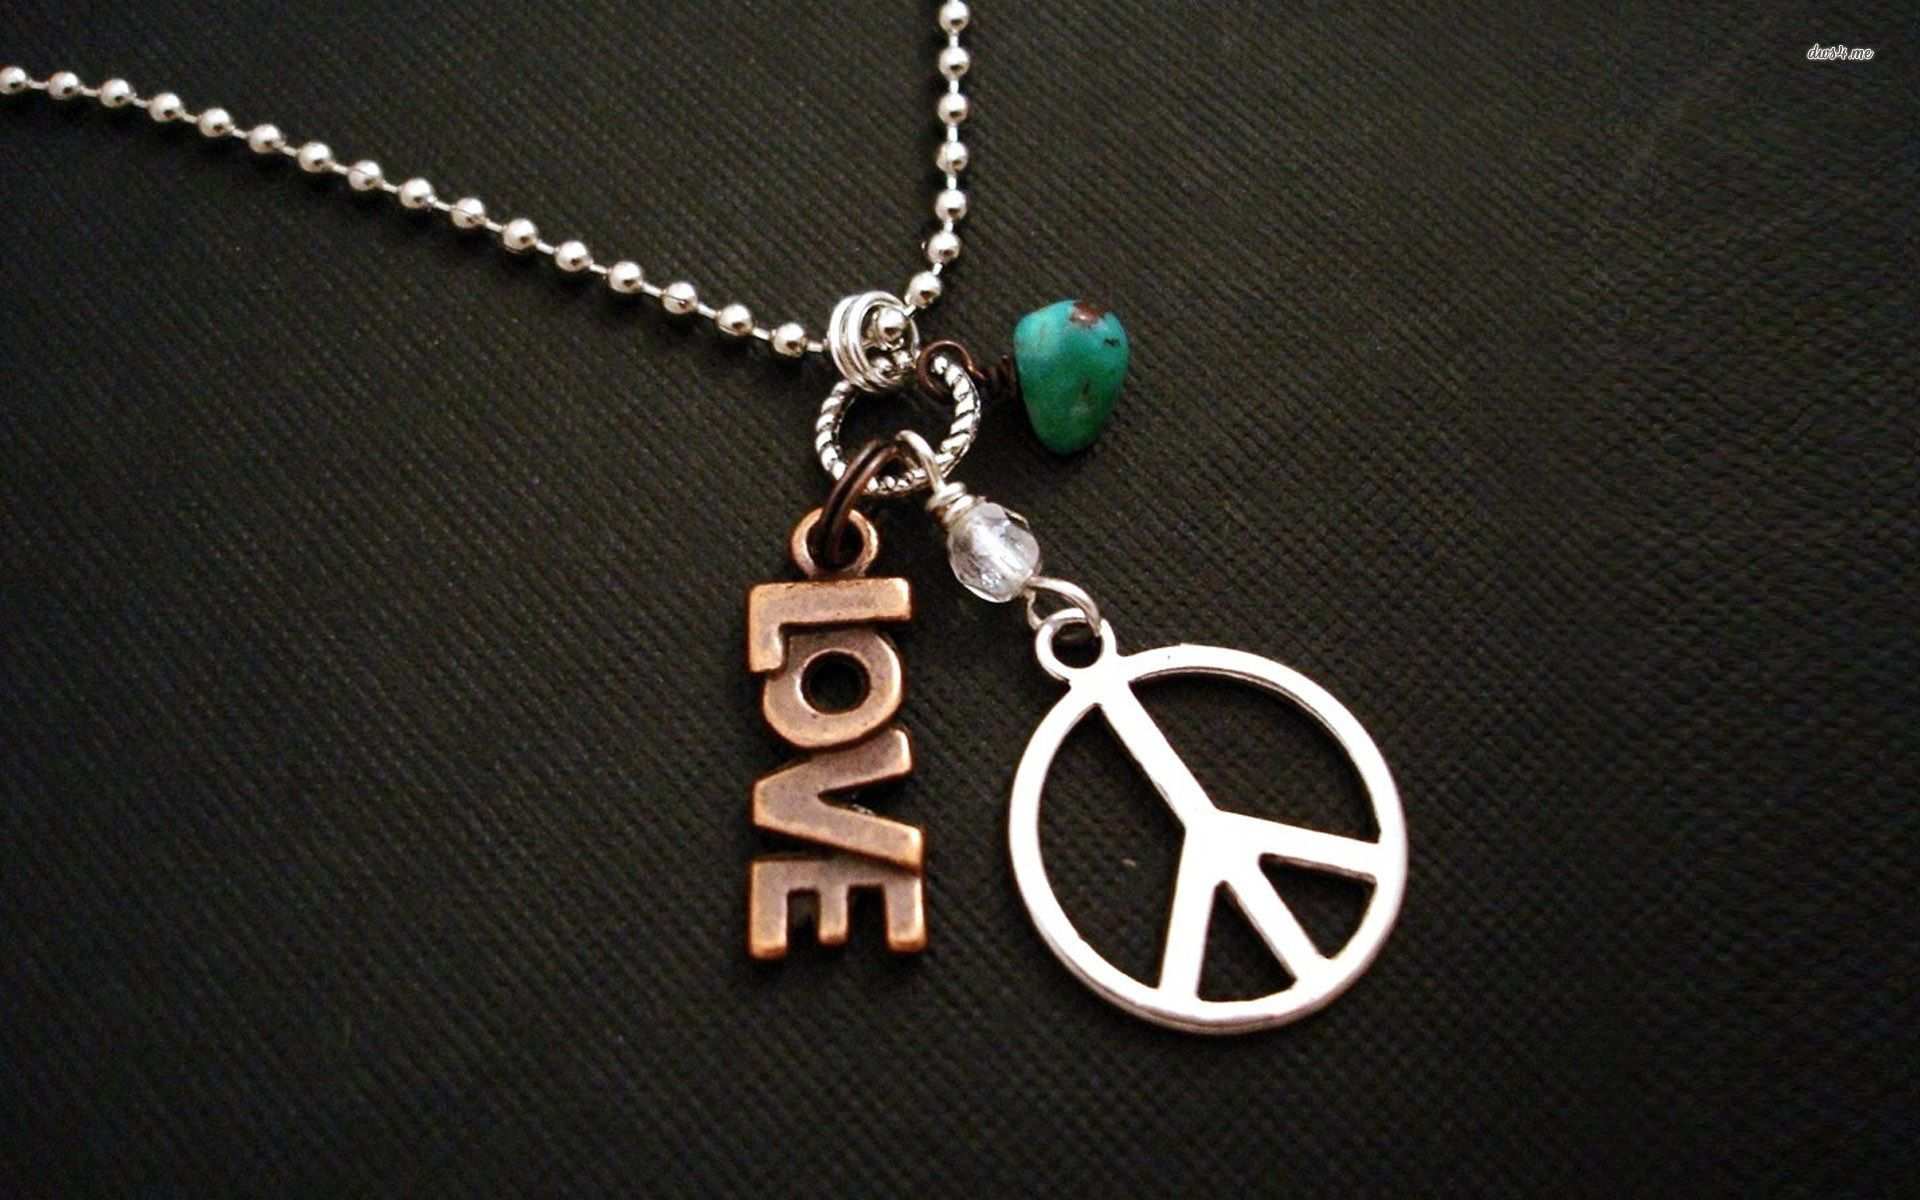 Love And Peace Hd Wallpaper Hippie Necklace Peace And Love Shop Earrings